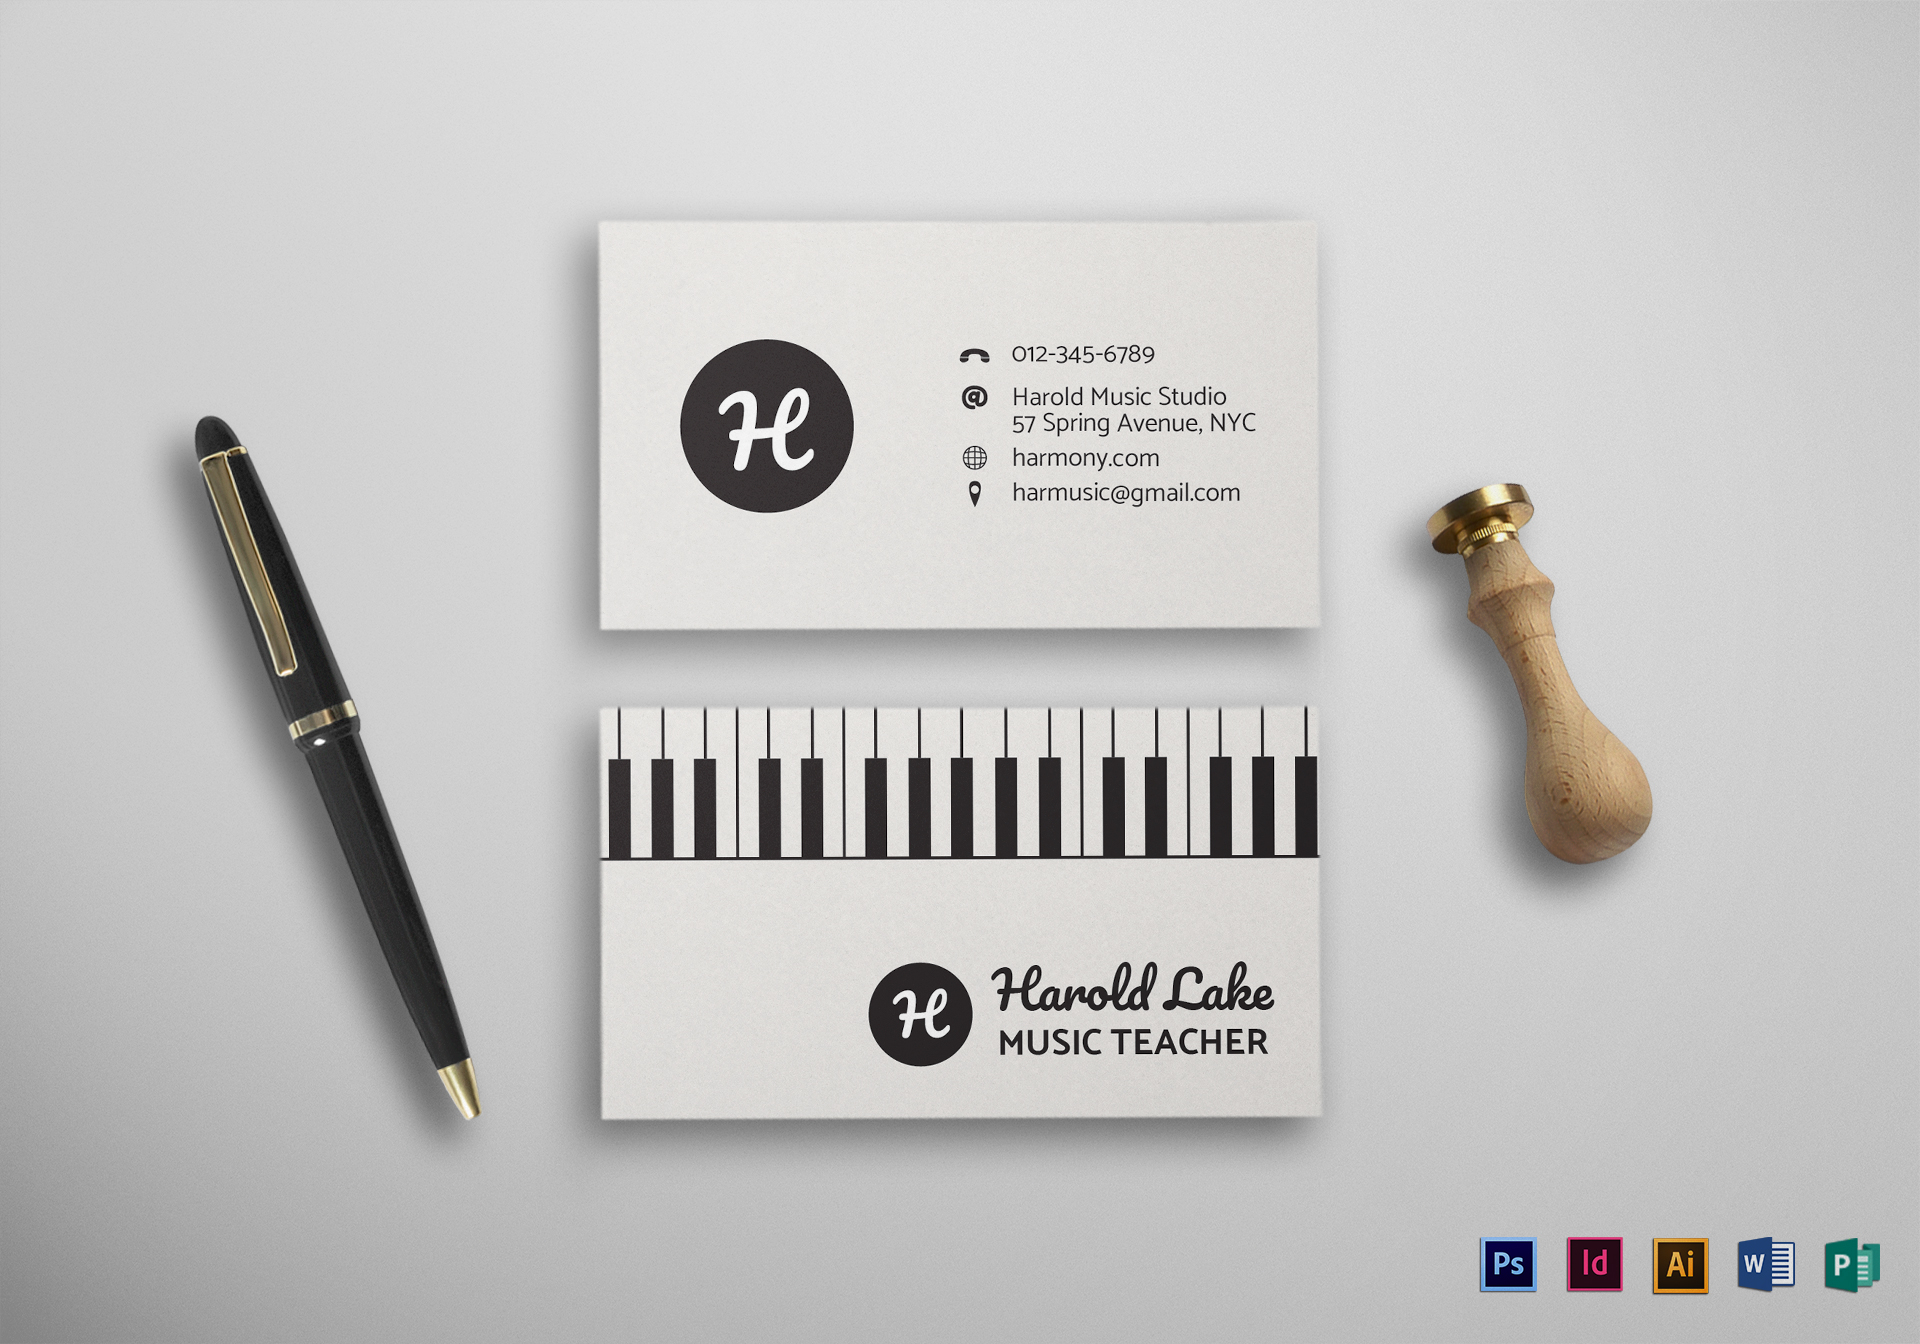 music business card template - 57 Business Card Word Template Useful